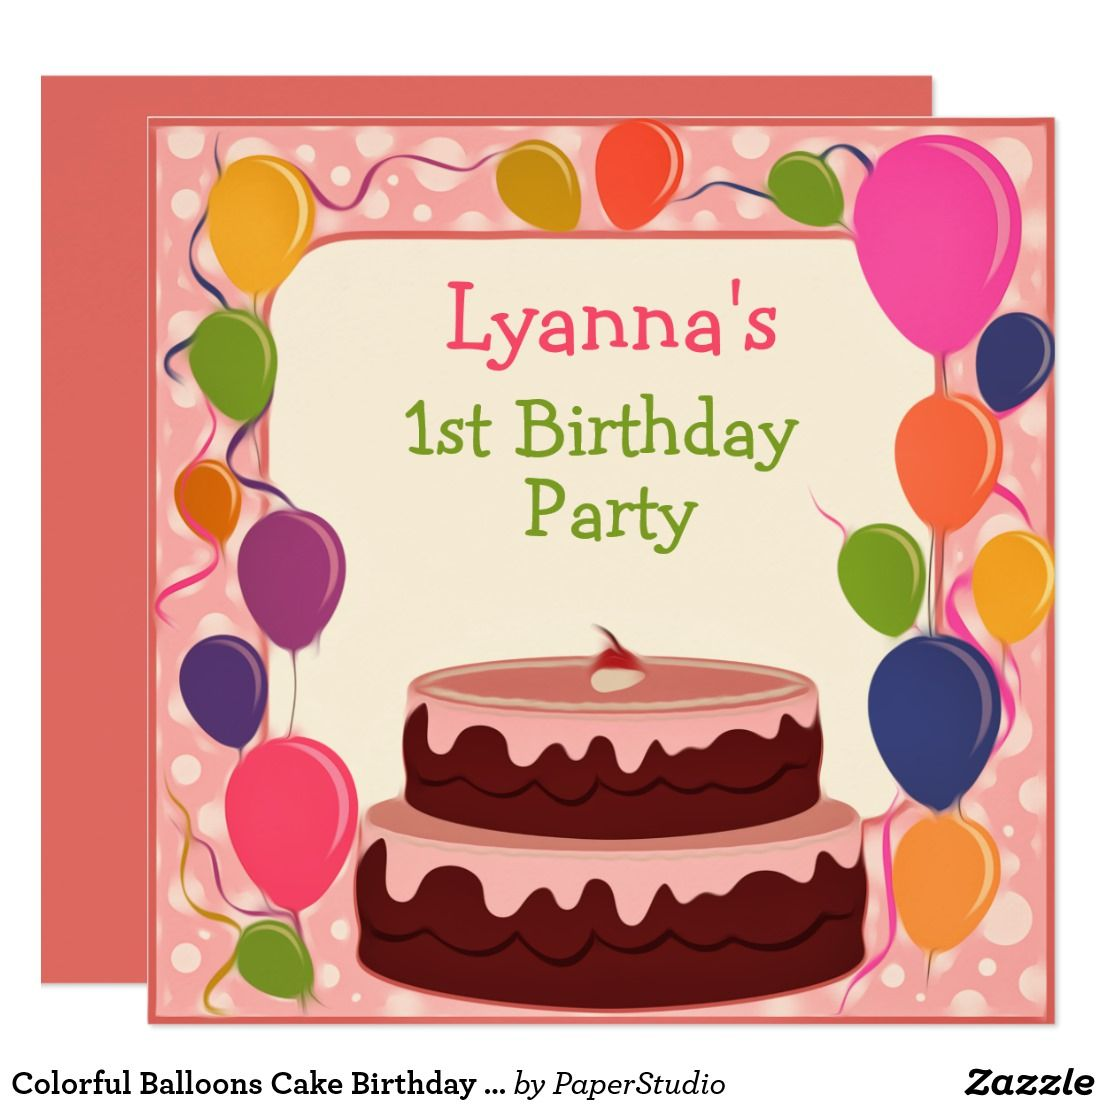 Colorful Balloons Cake Birthday Invitation Card | Celebrations Cards ...